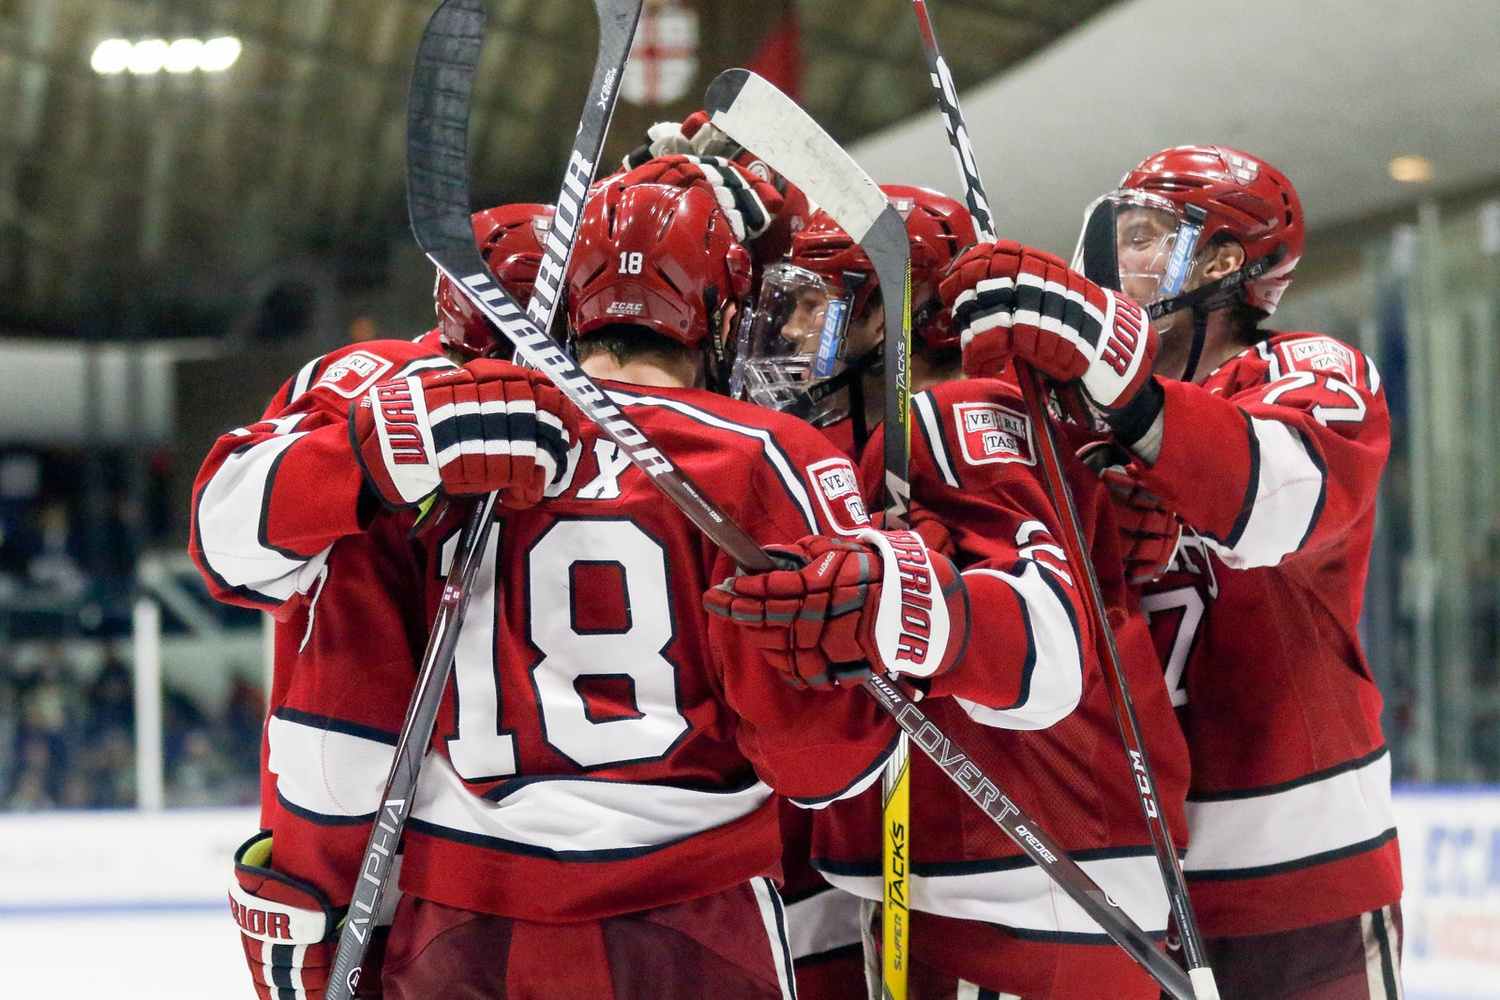 Harvard's first powerplay was consistently one of the most lethal units in college hockey last year.